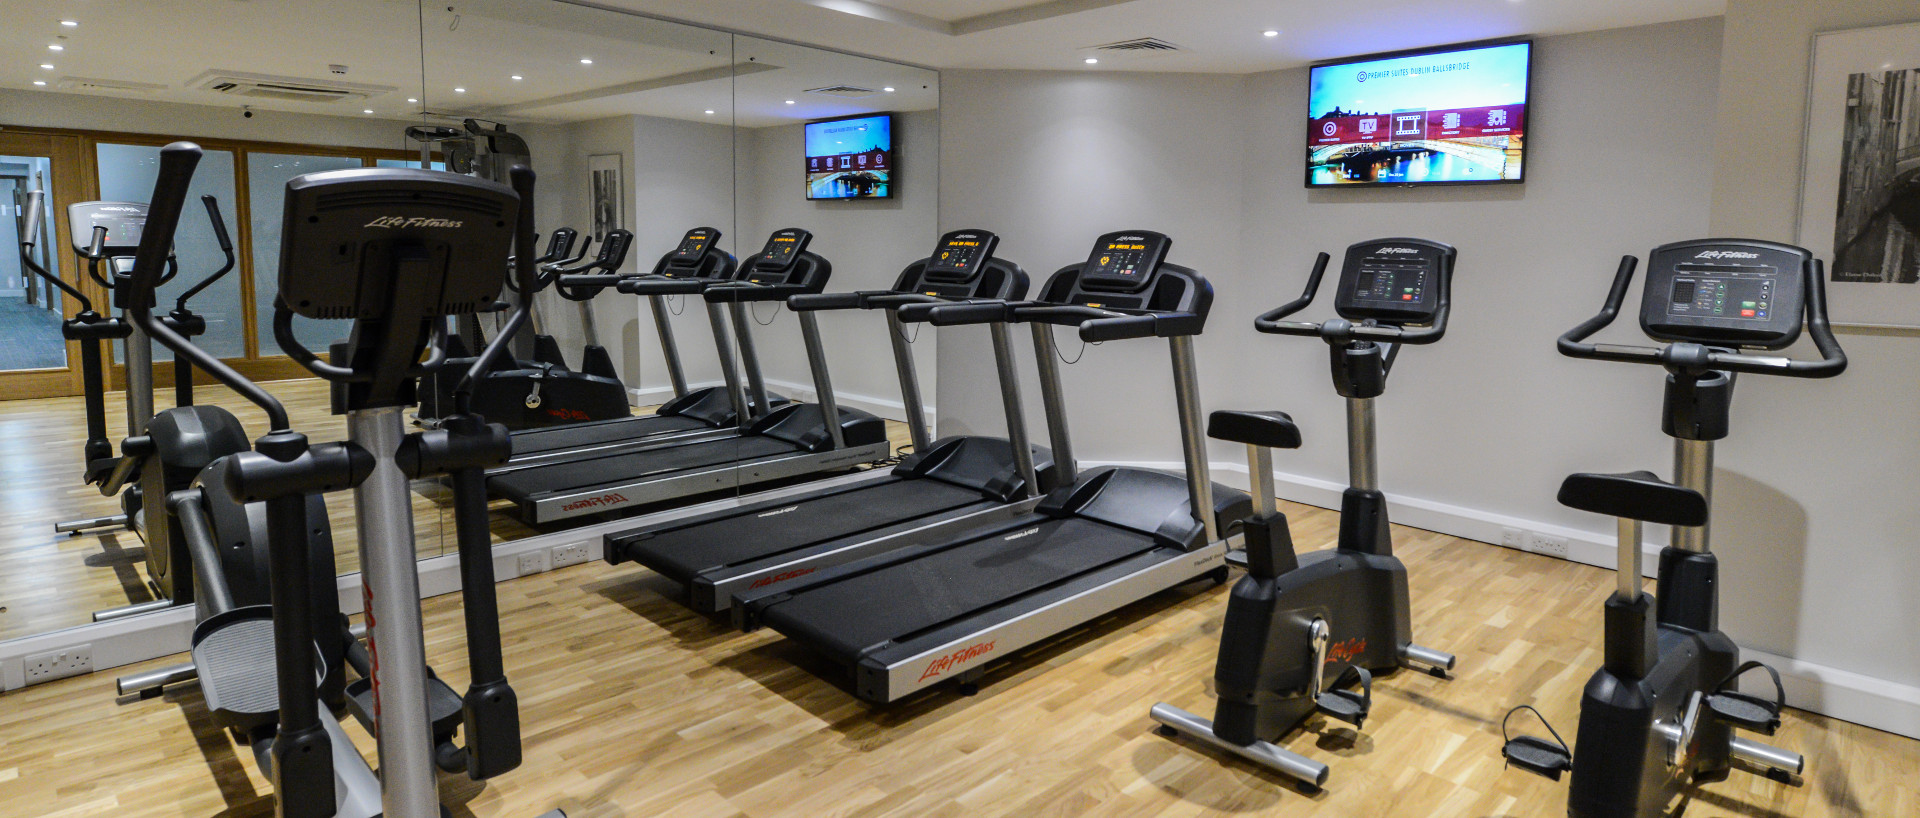 PREMIER SUITES PLUS Dublin fully equipped gym